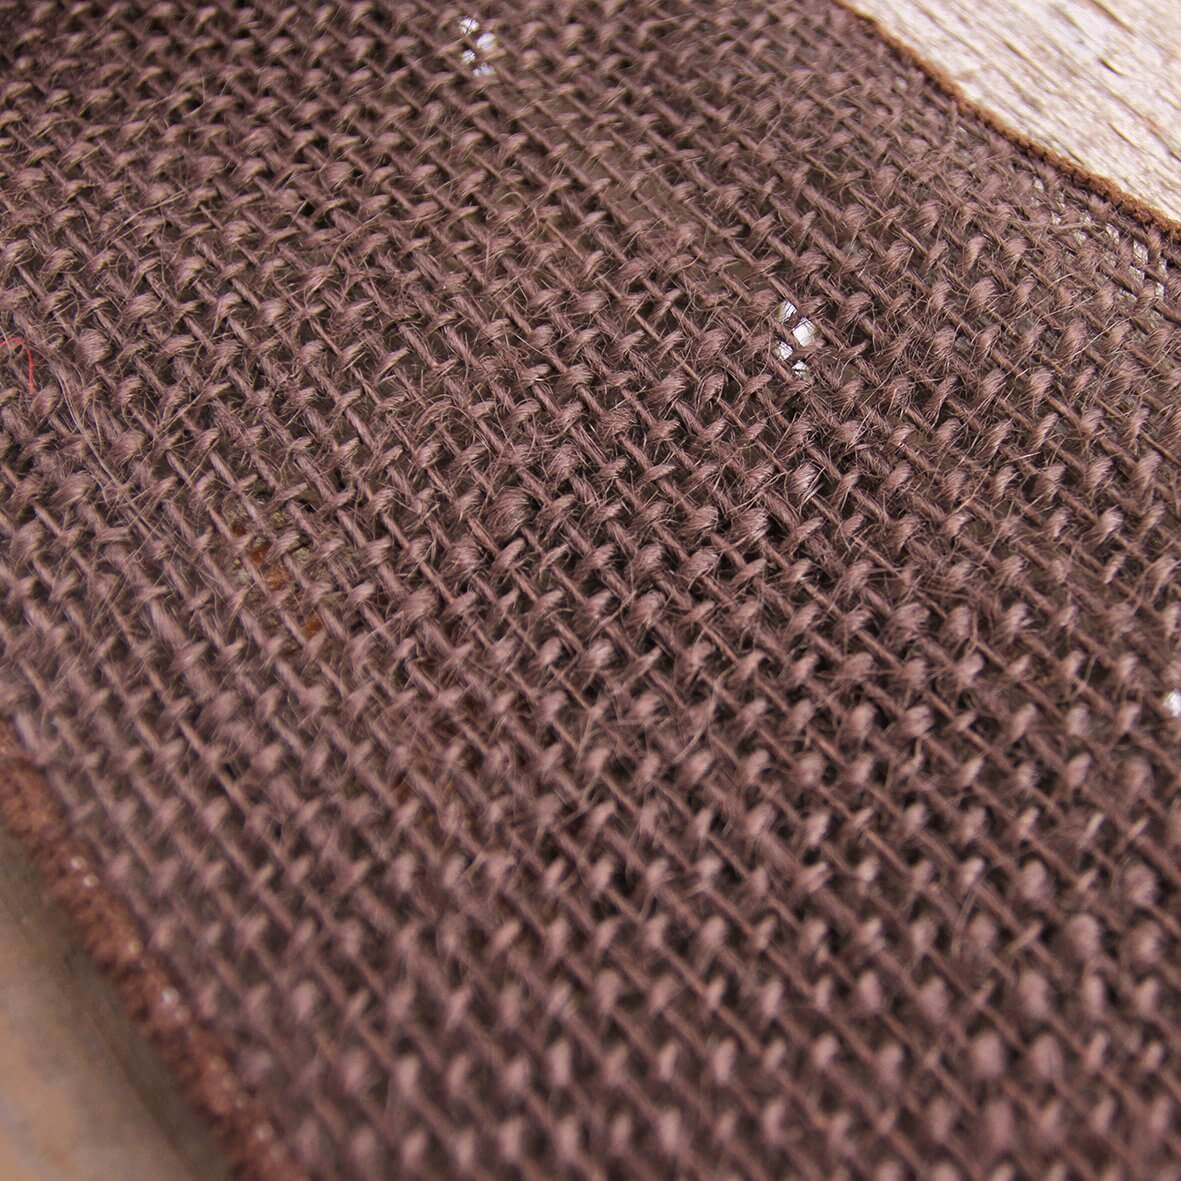 Wired Edge 100mm Hessian - Brown